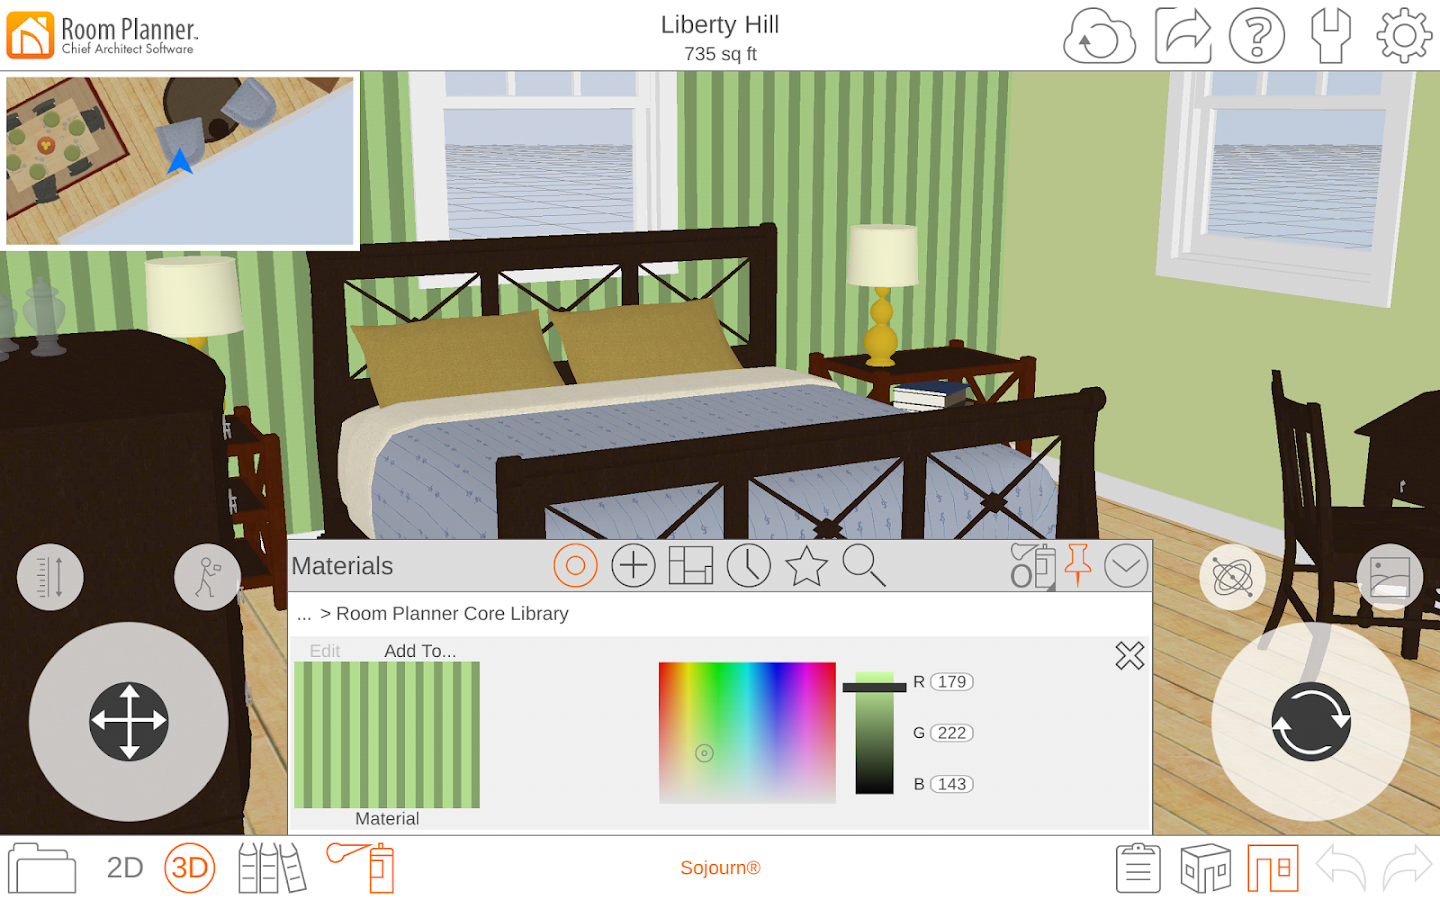 Room Planner Home Design  screenshotRoom Planner Home Design   Android Apps on Google Play. Room Design App Pc. Home Design Ideas